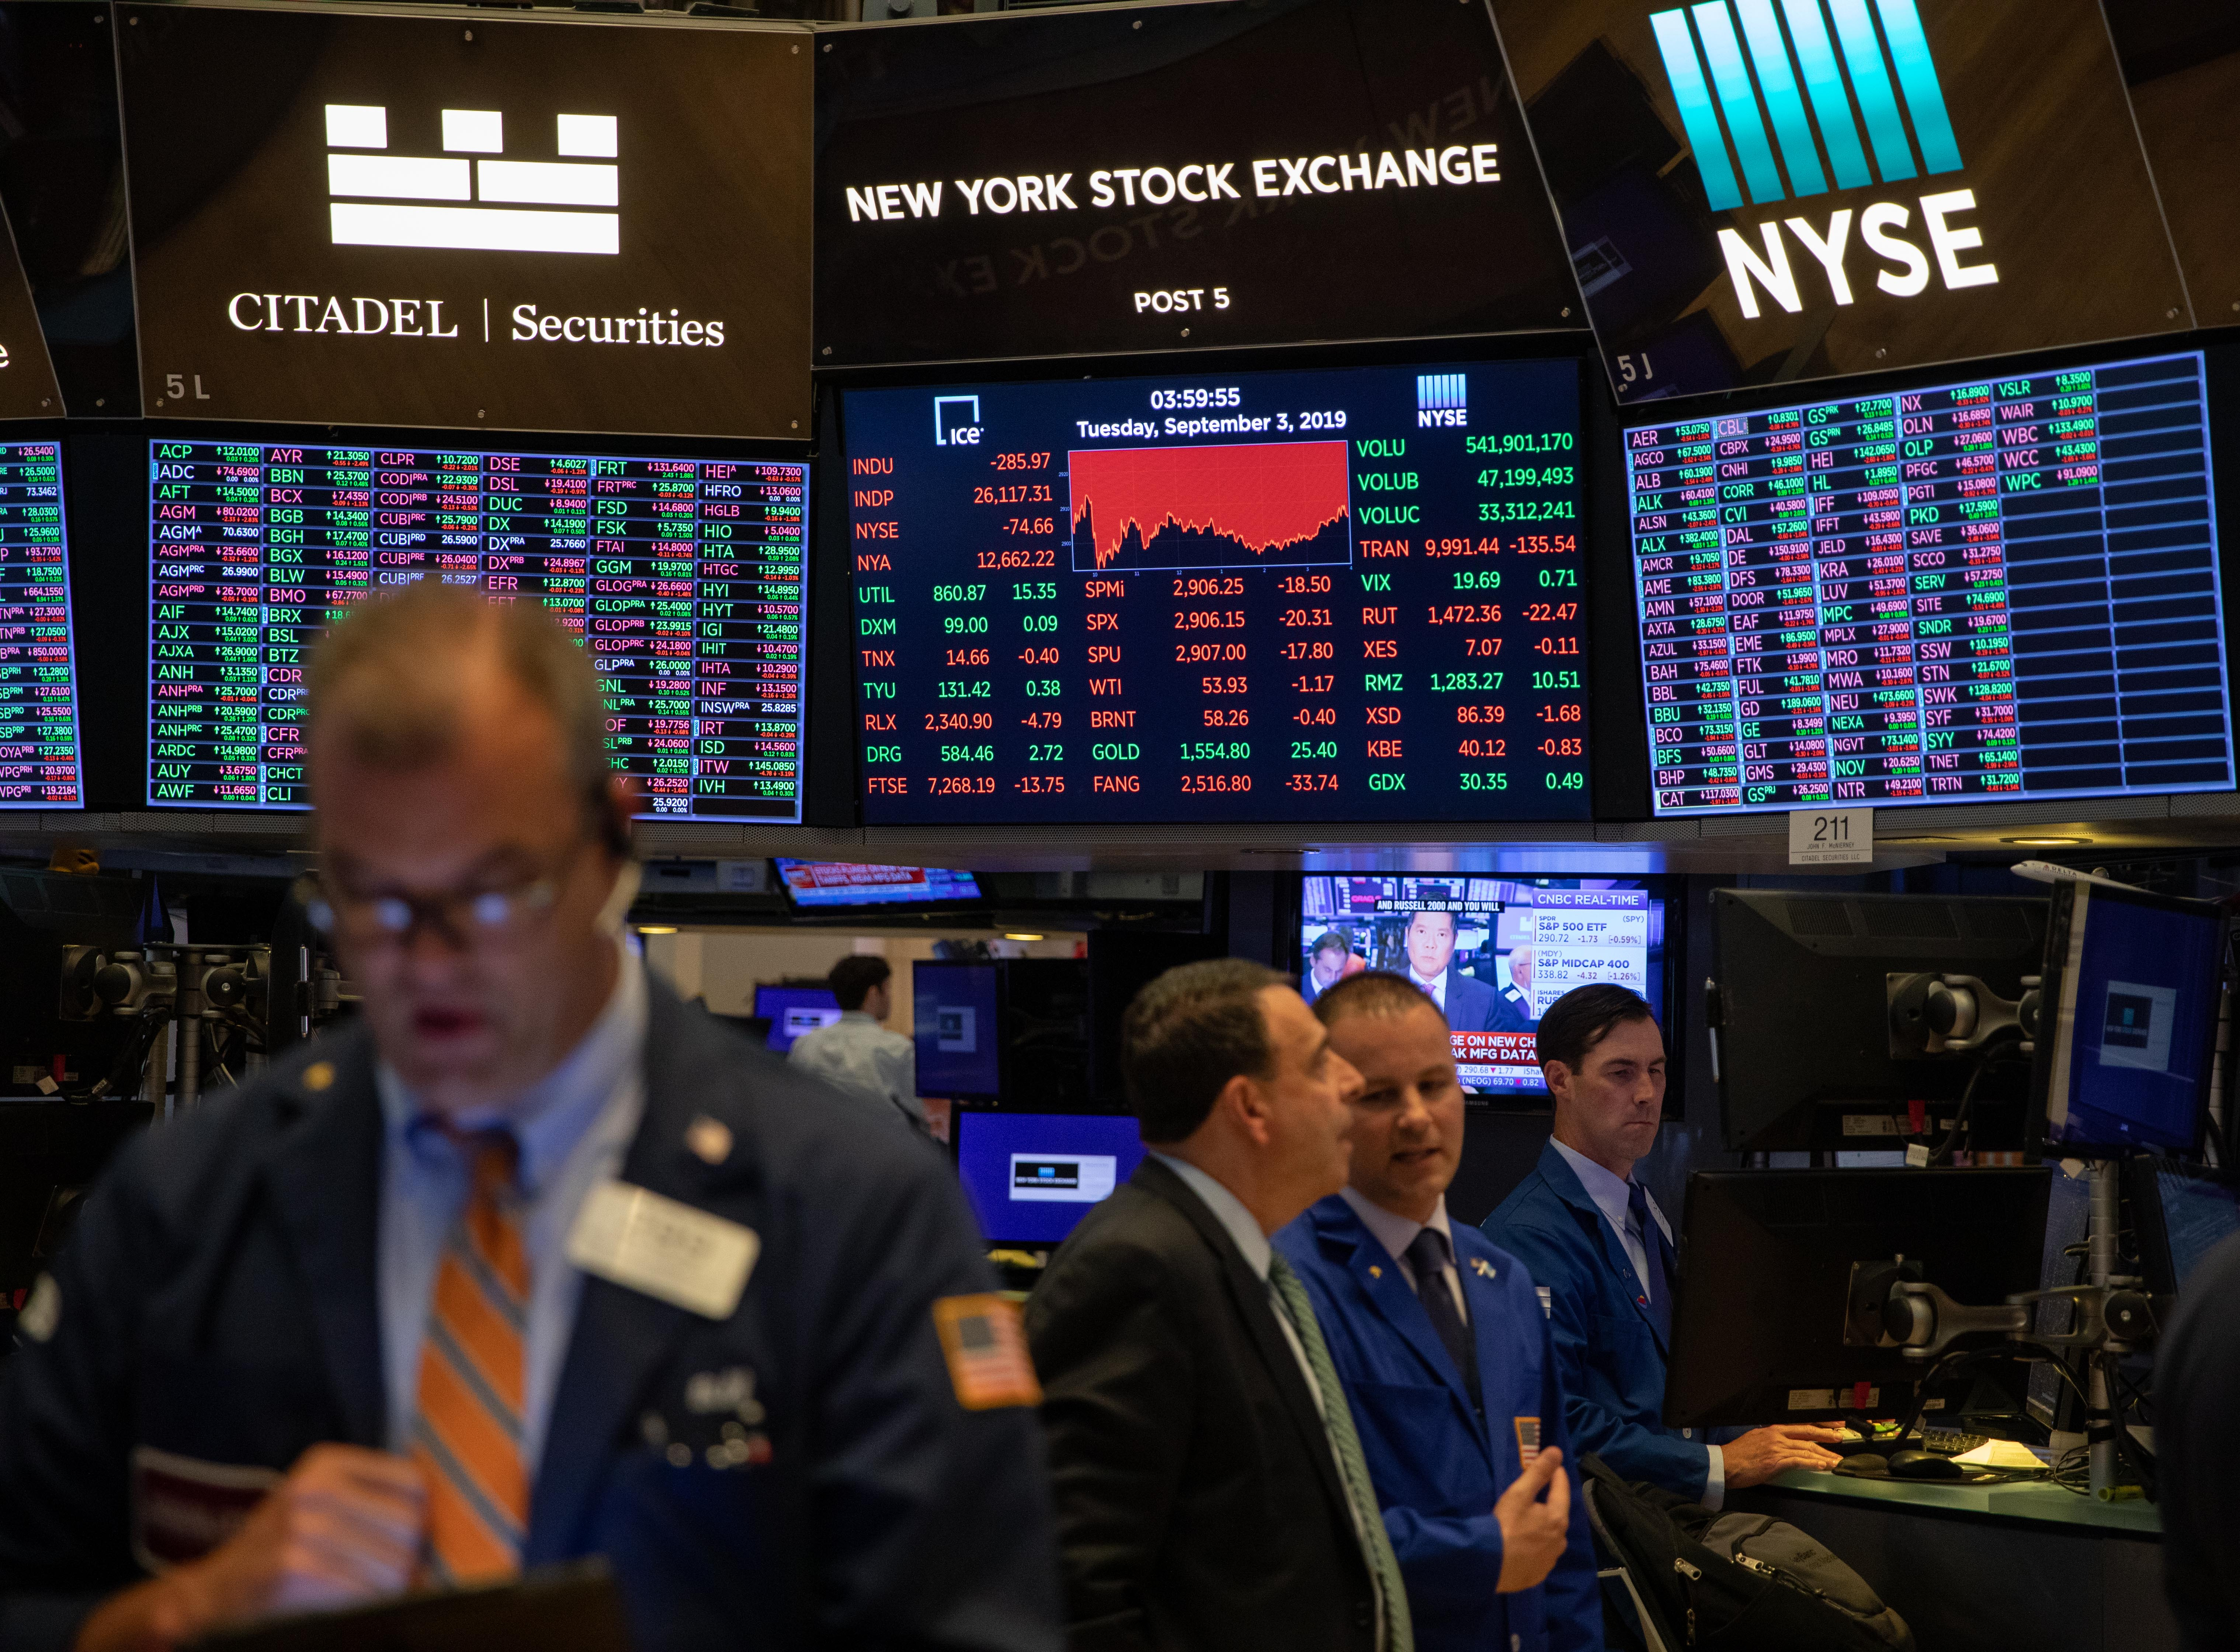 Dow plunges over 600 points as sell-off accelerates